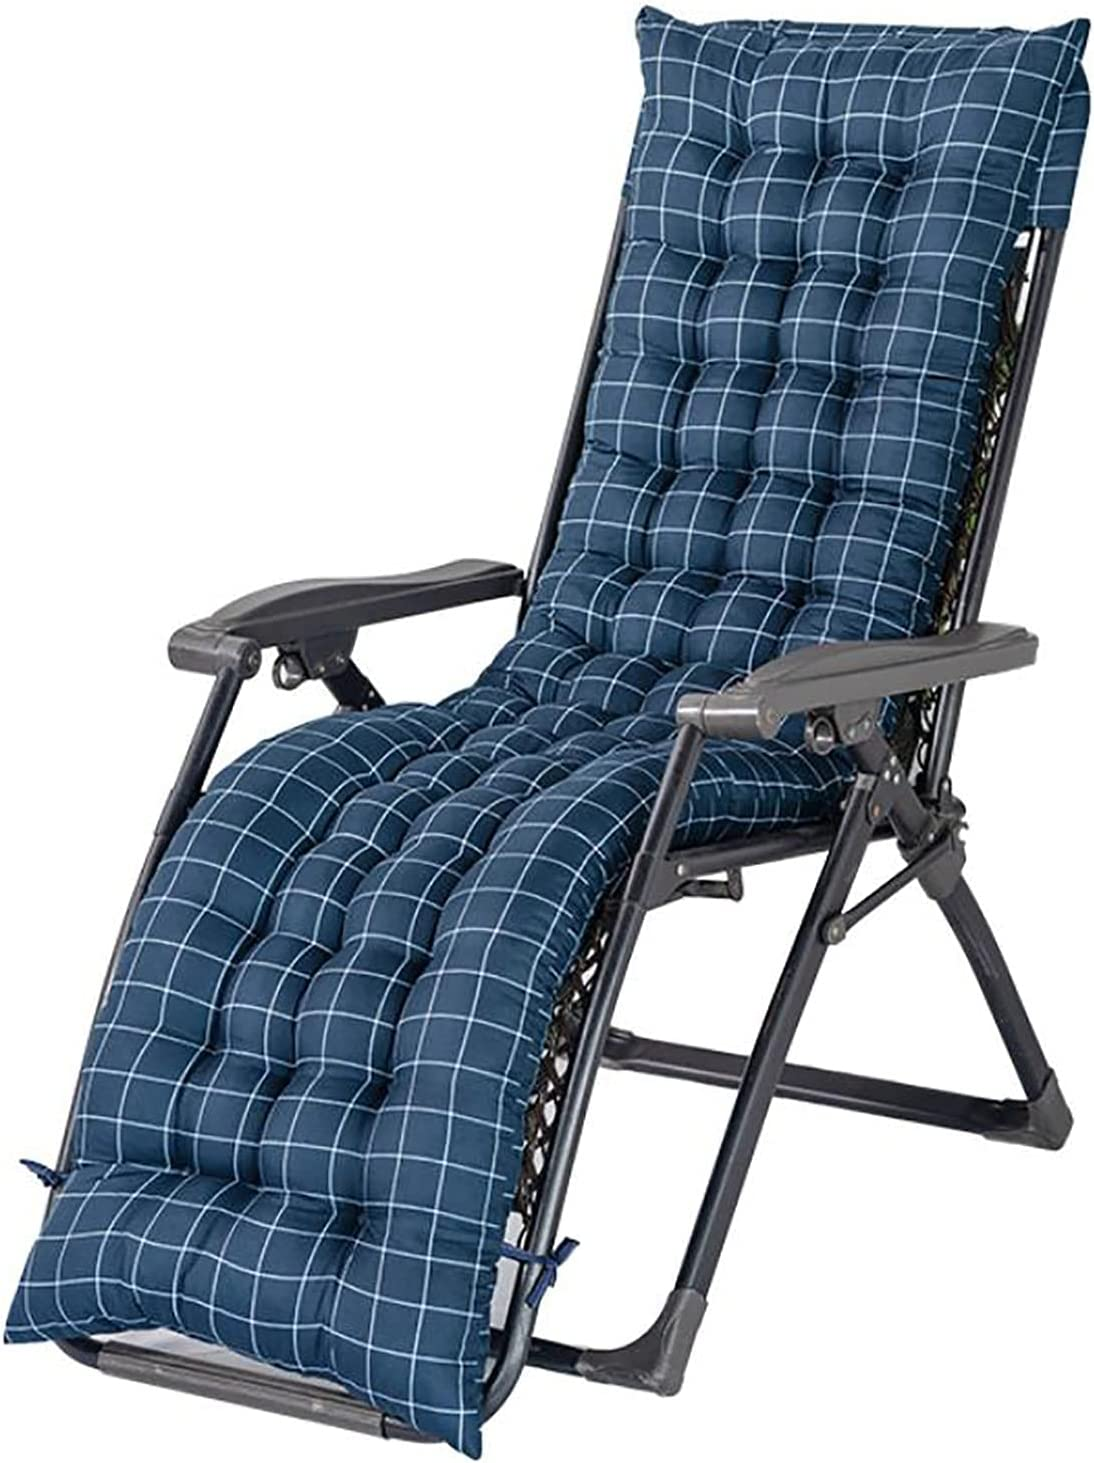 NqceKsrdfzn Sun Lounger Chair Cushions New color Soldering Non-Slip High Chaise Back